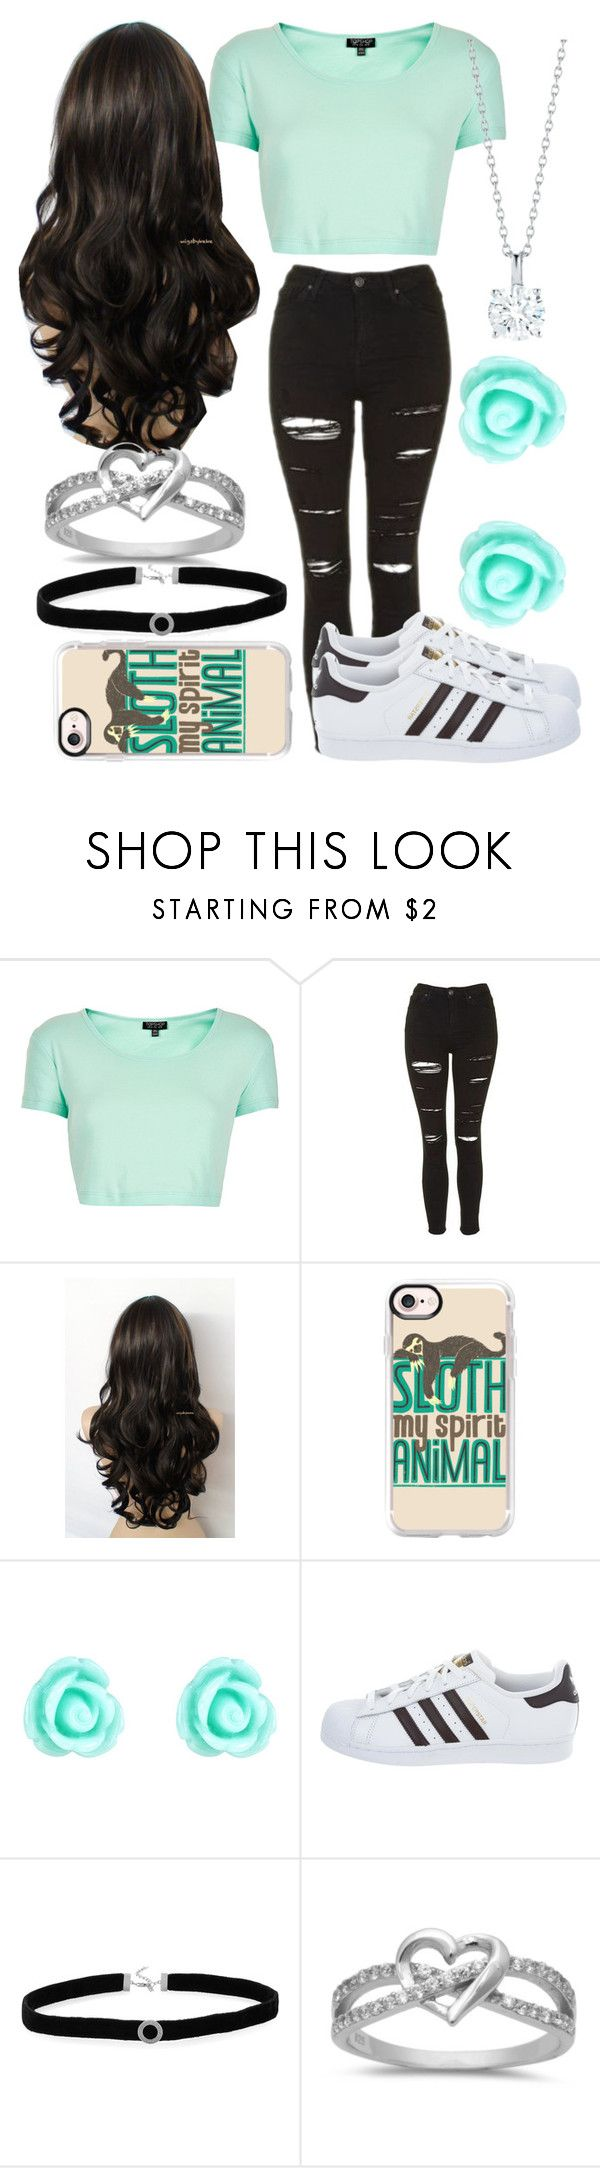 """""""Untitled #56"""" by mylifeasem ❤ liked on Polyvore featuring Topshop, Casetify, Monsoon, adidas and BillyTheTree"""